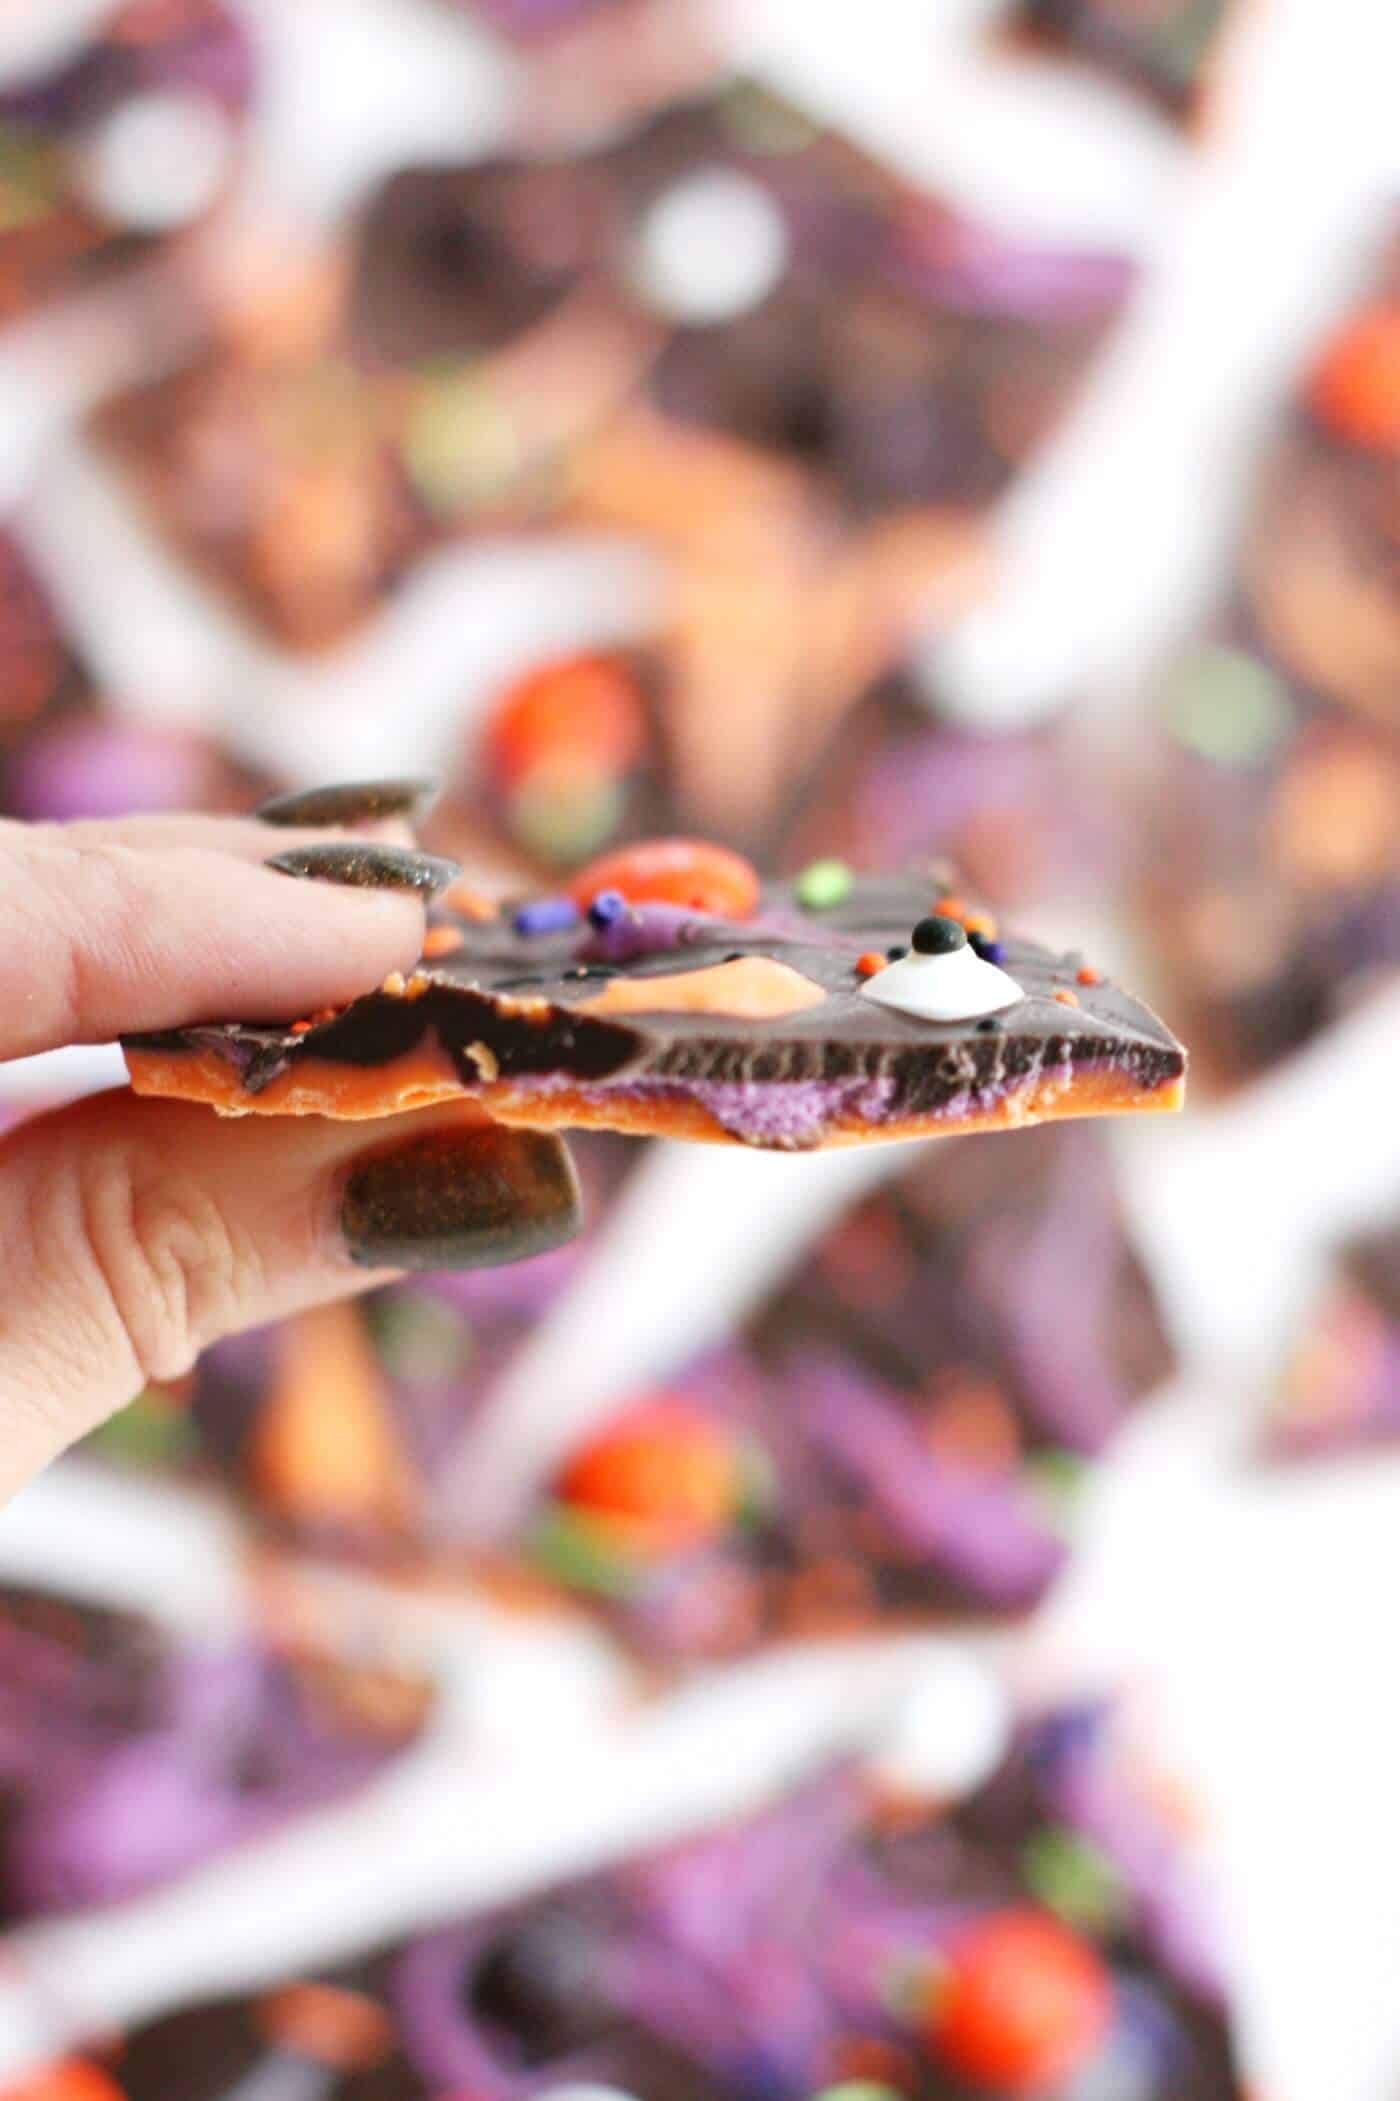 Use multiple colors of melting chocolate to make this spooky Halloween bark! Kids love to get involved too. It's so fun and so tasty!